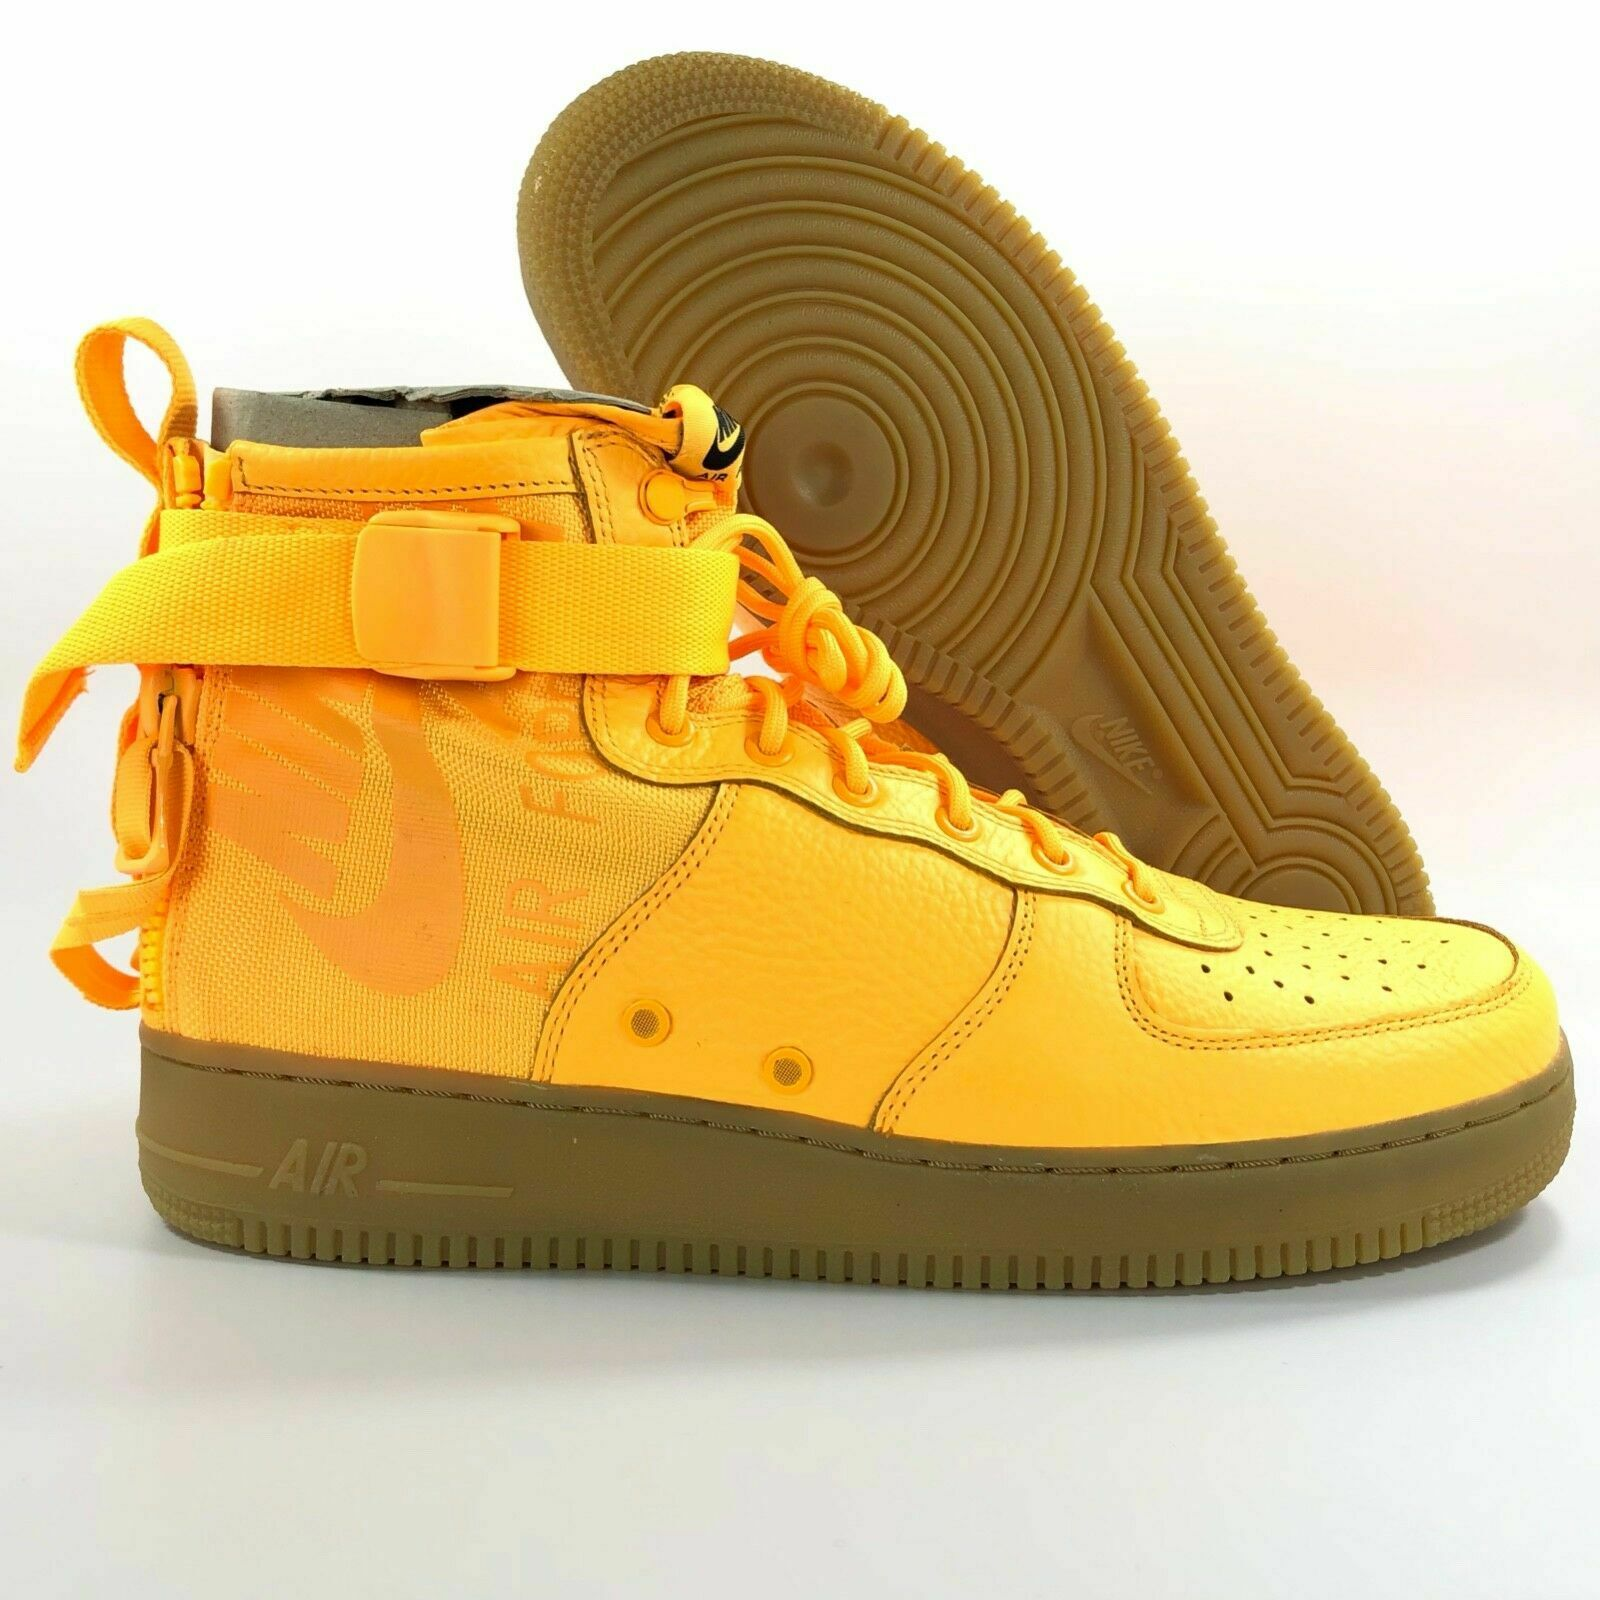 a2f11abccd NIKE AIR FORCE 1 MID OBJ SPECIAL FIELD LASER orange 917753 801 Men 10